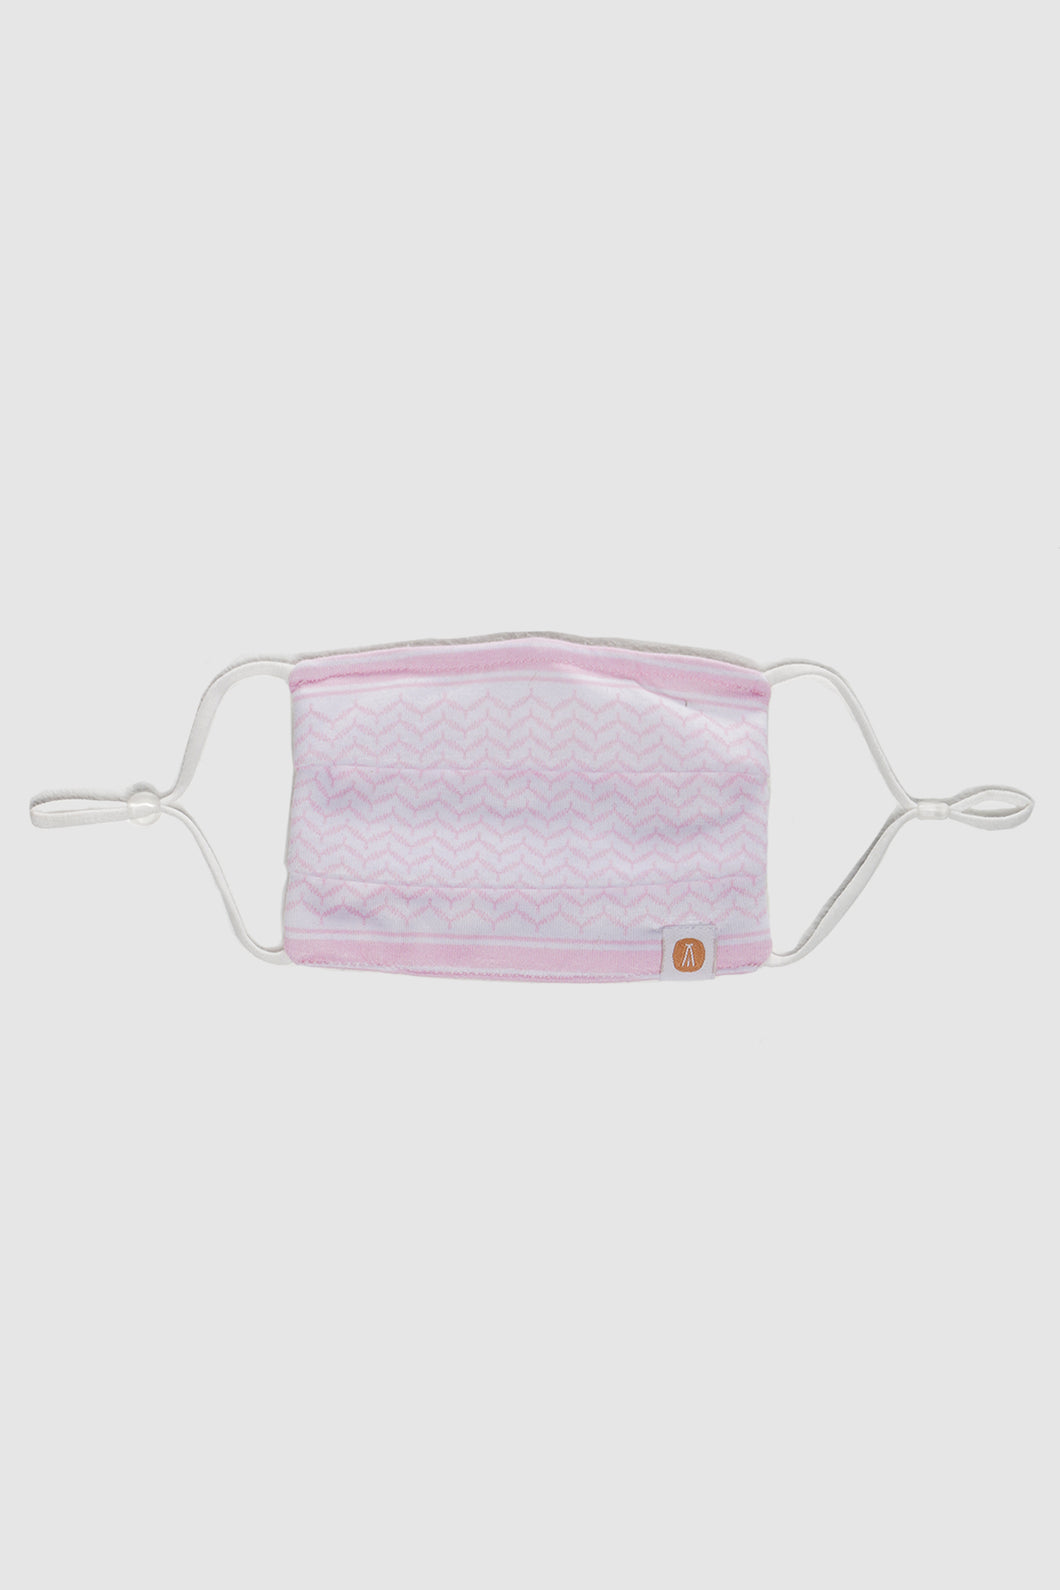 Face Mask - Pink Shemagh